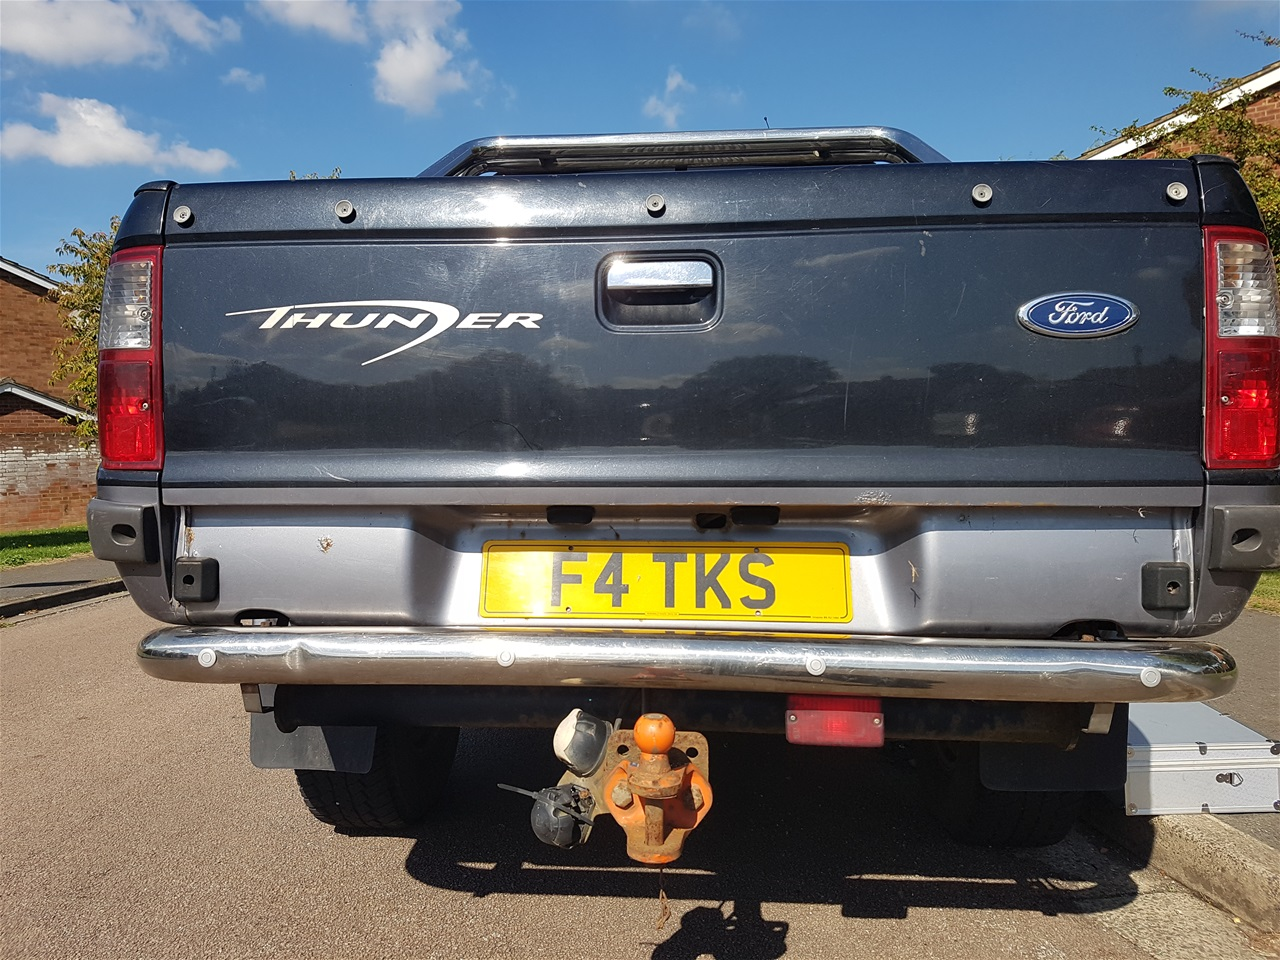 Ford Thunder rear parking sensors